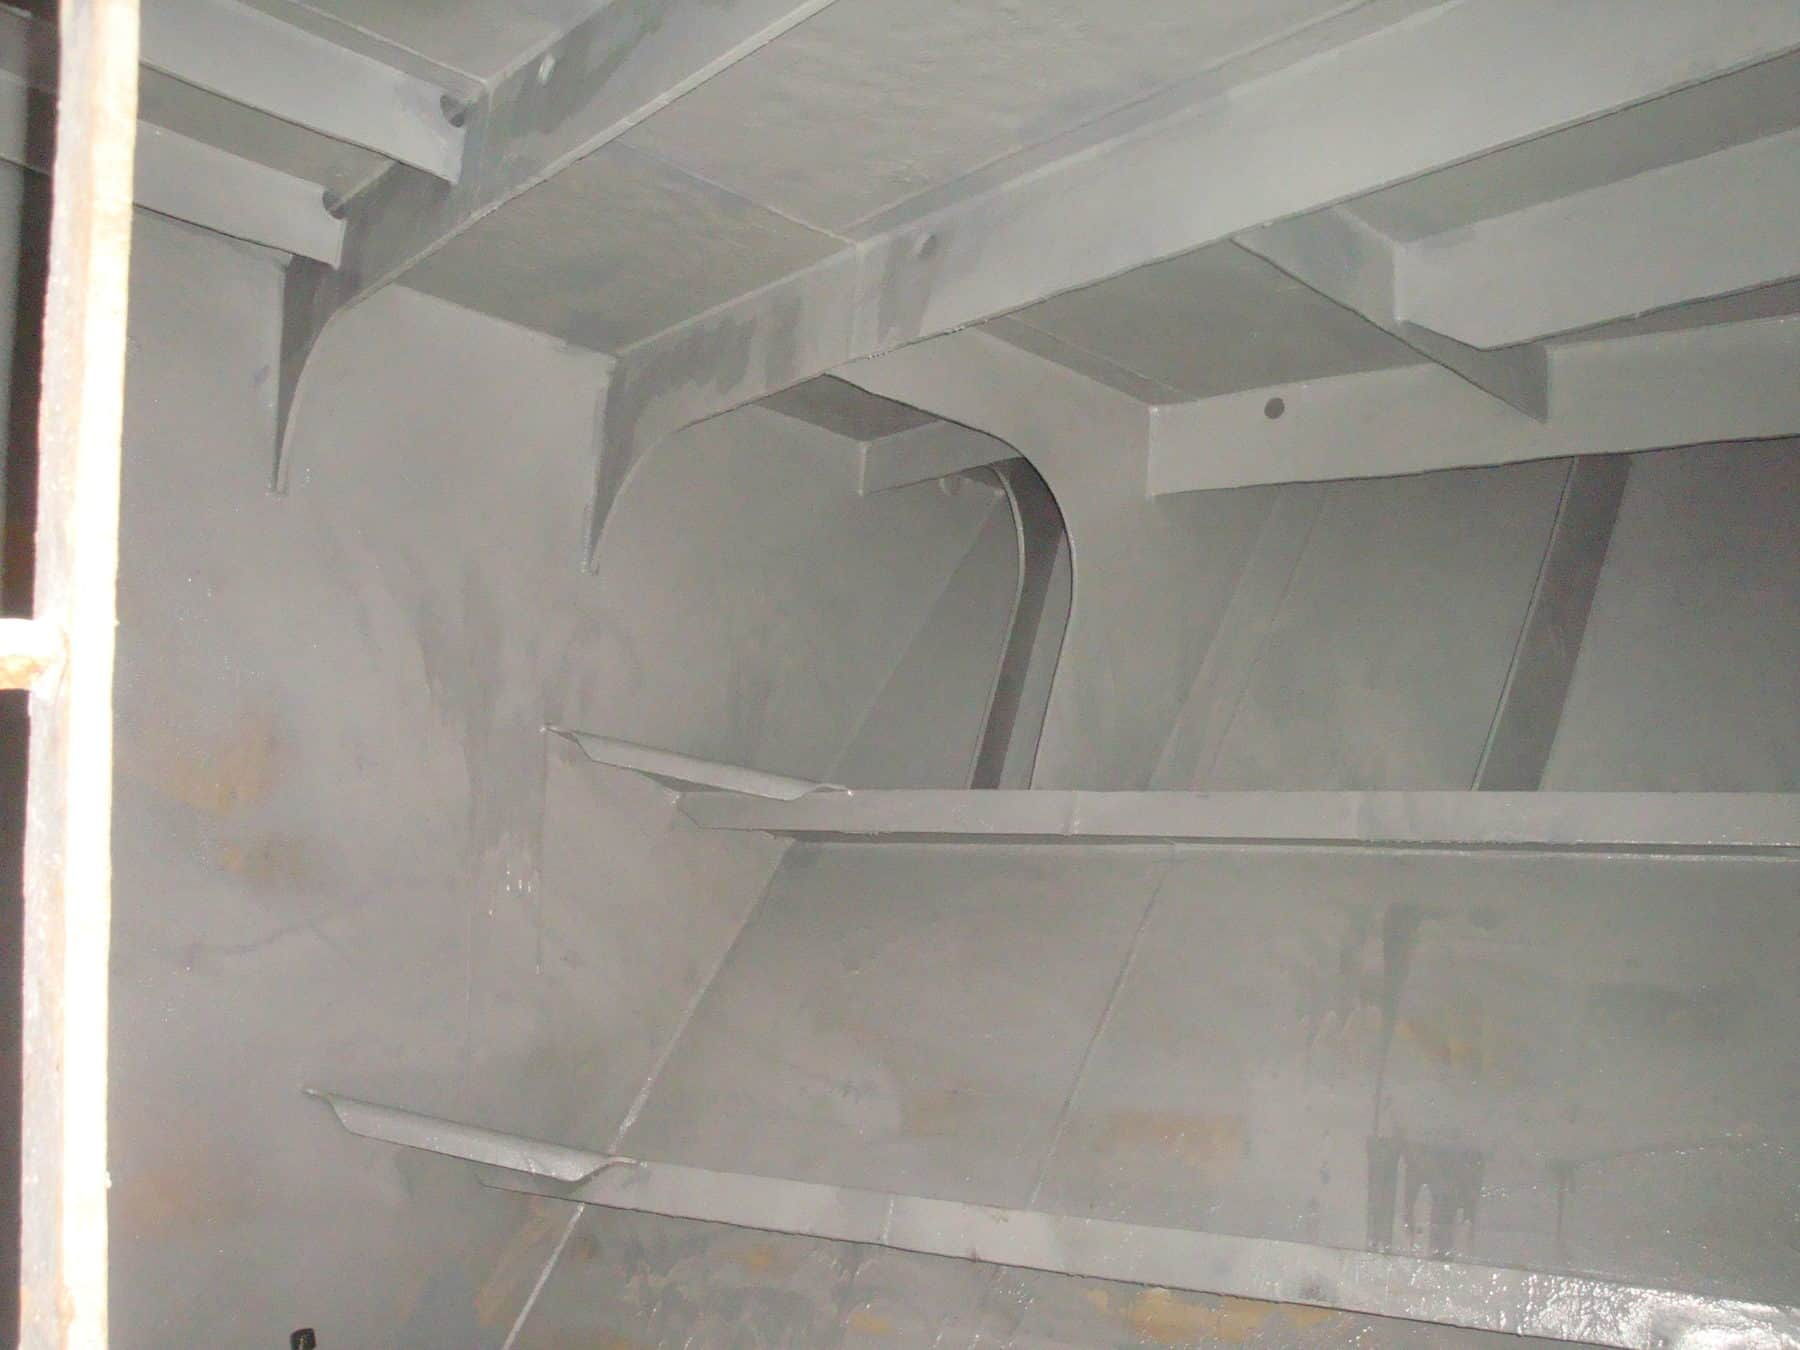 tank internals painted in grey